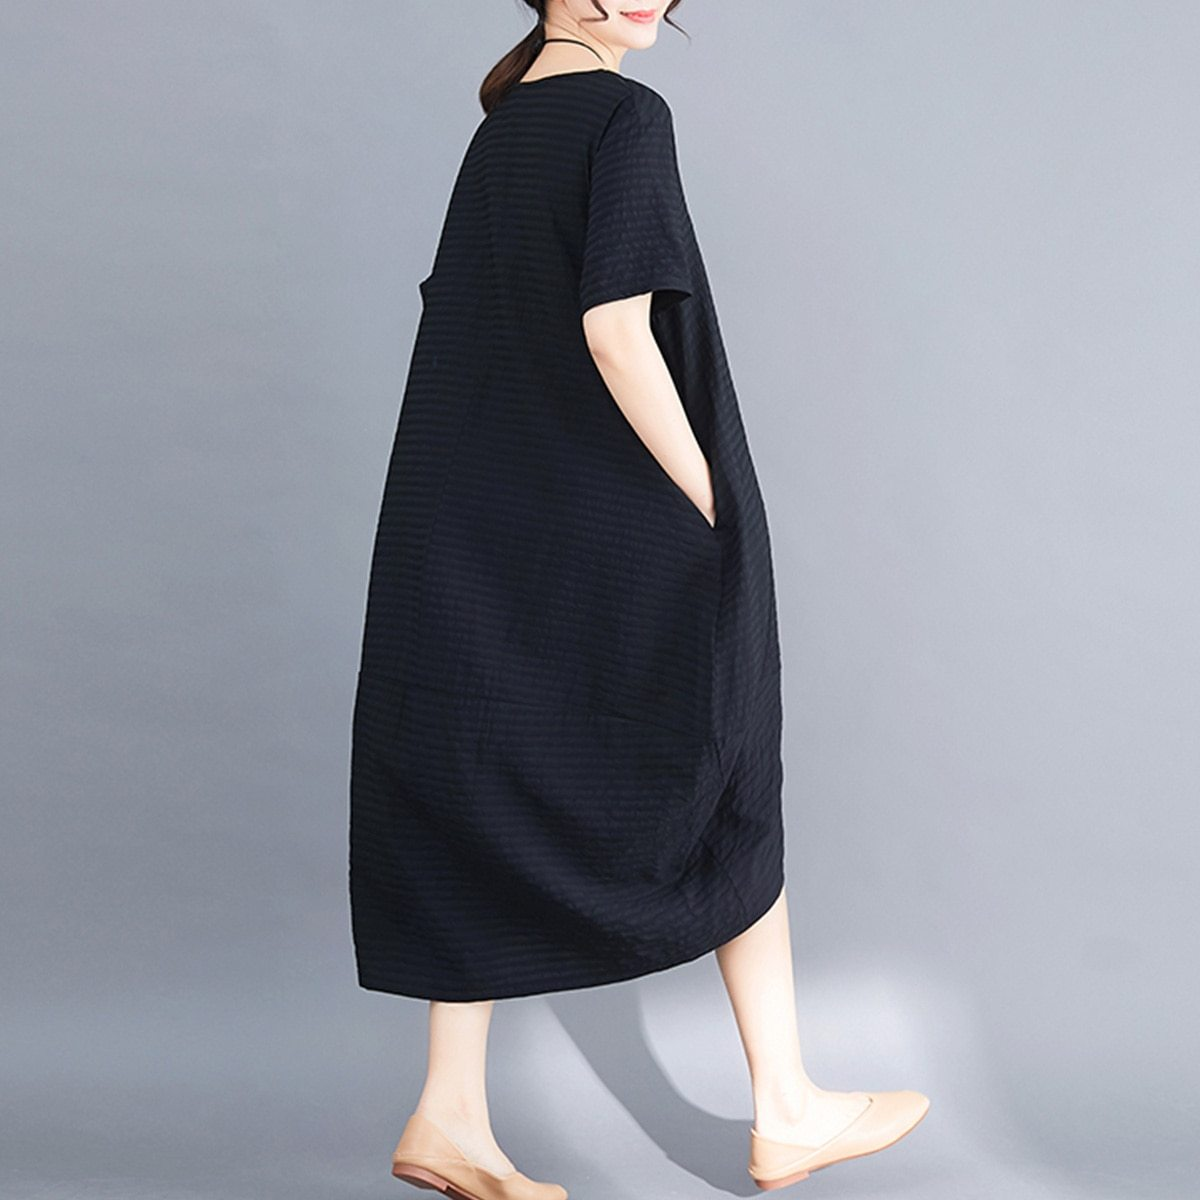 Maternity Dress O Neck Loose All Match Chic Breathable Mom Dress image 6